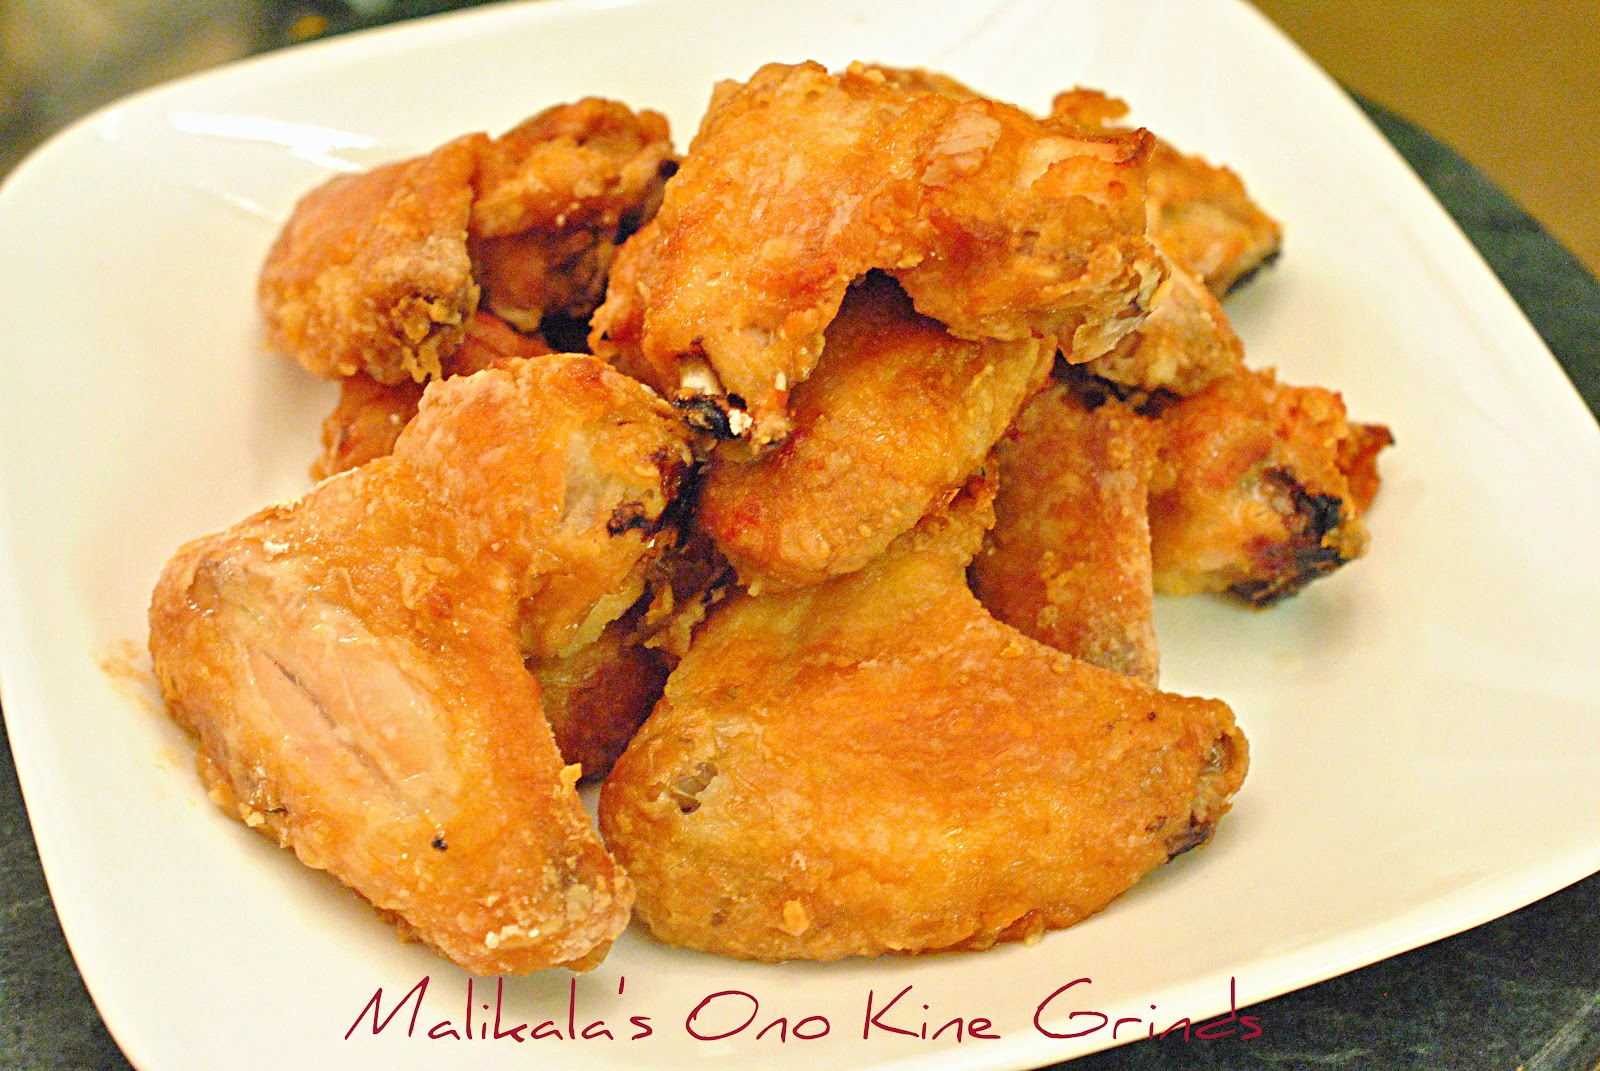 Malikala's Ono Kine Grinds: Baked Crispy Chicken Wings